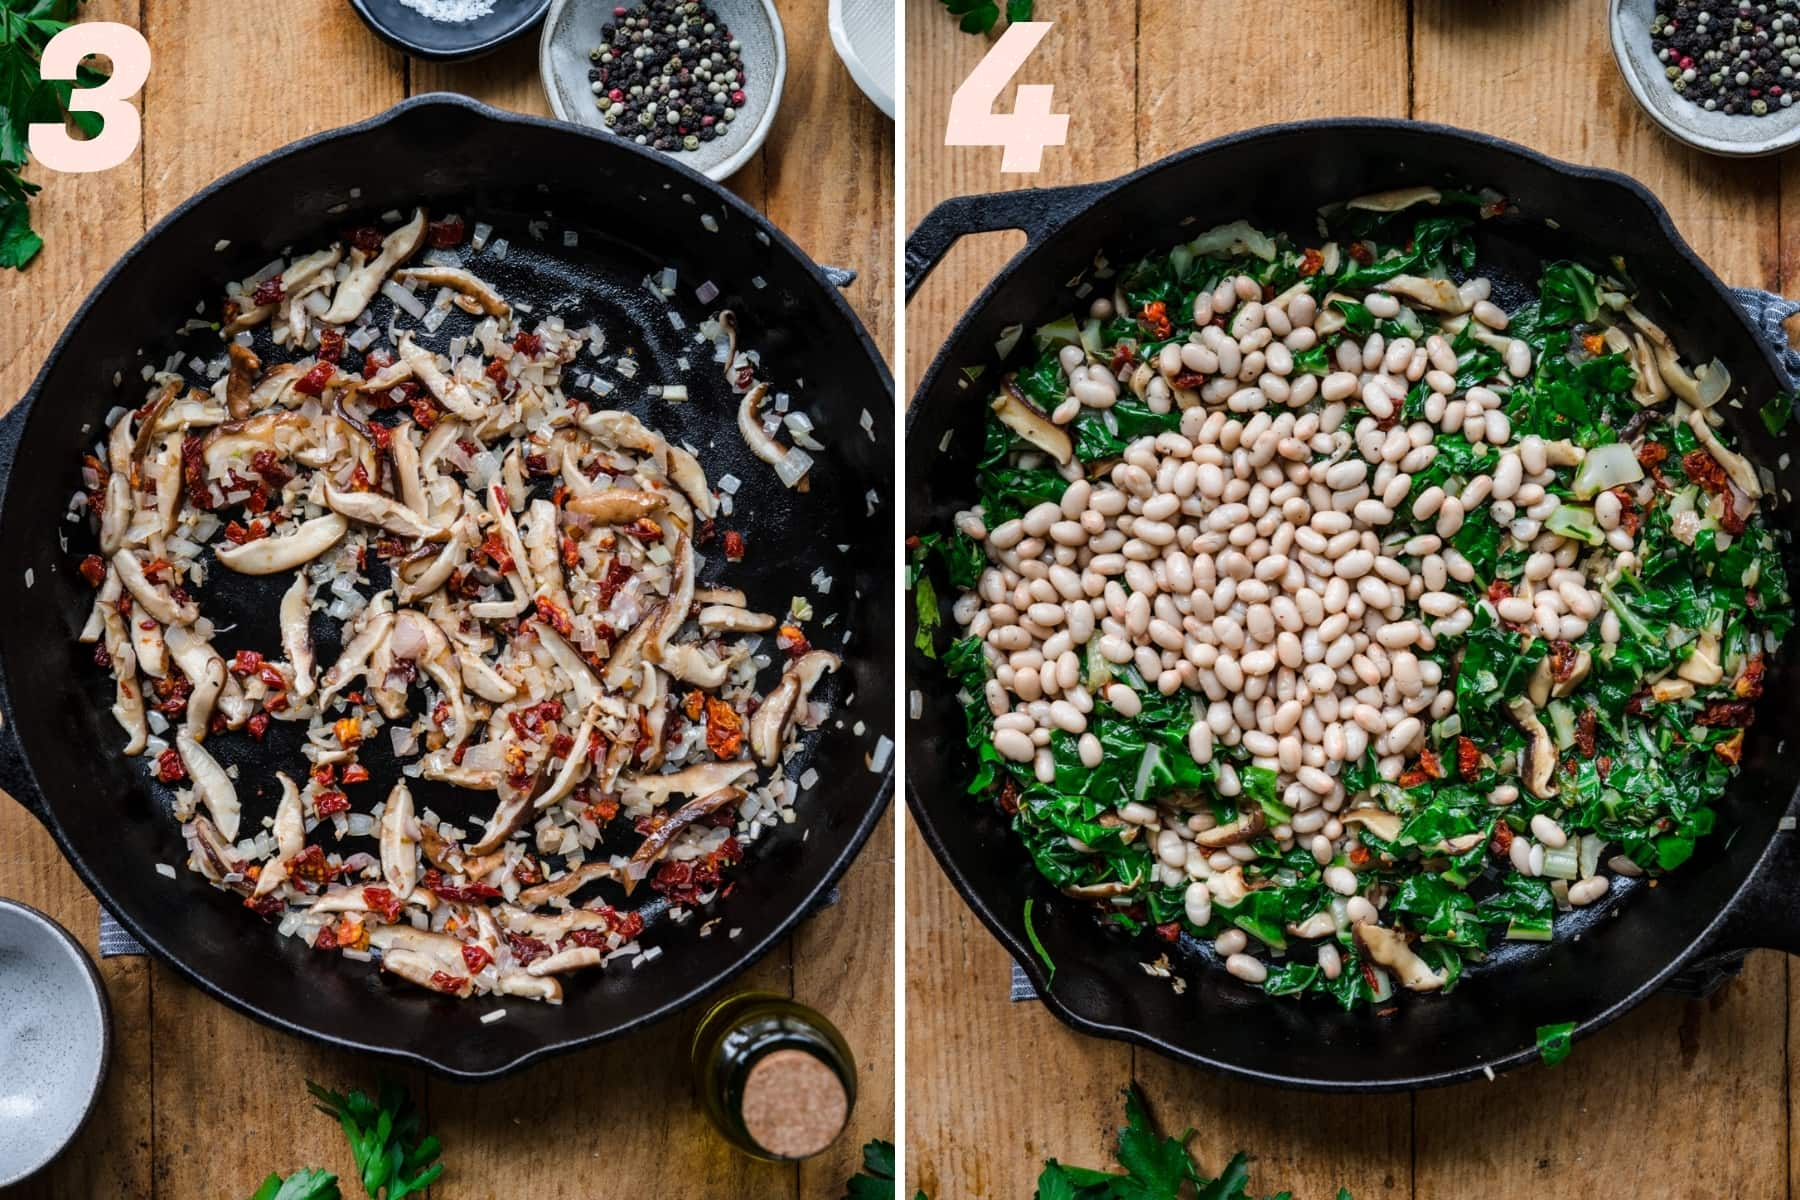 before and after adding white beans and greens to sautéed mushrooms and sun dried tomatoes.